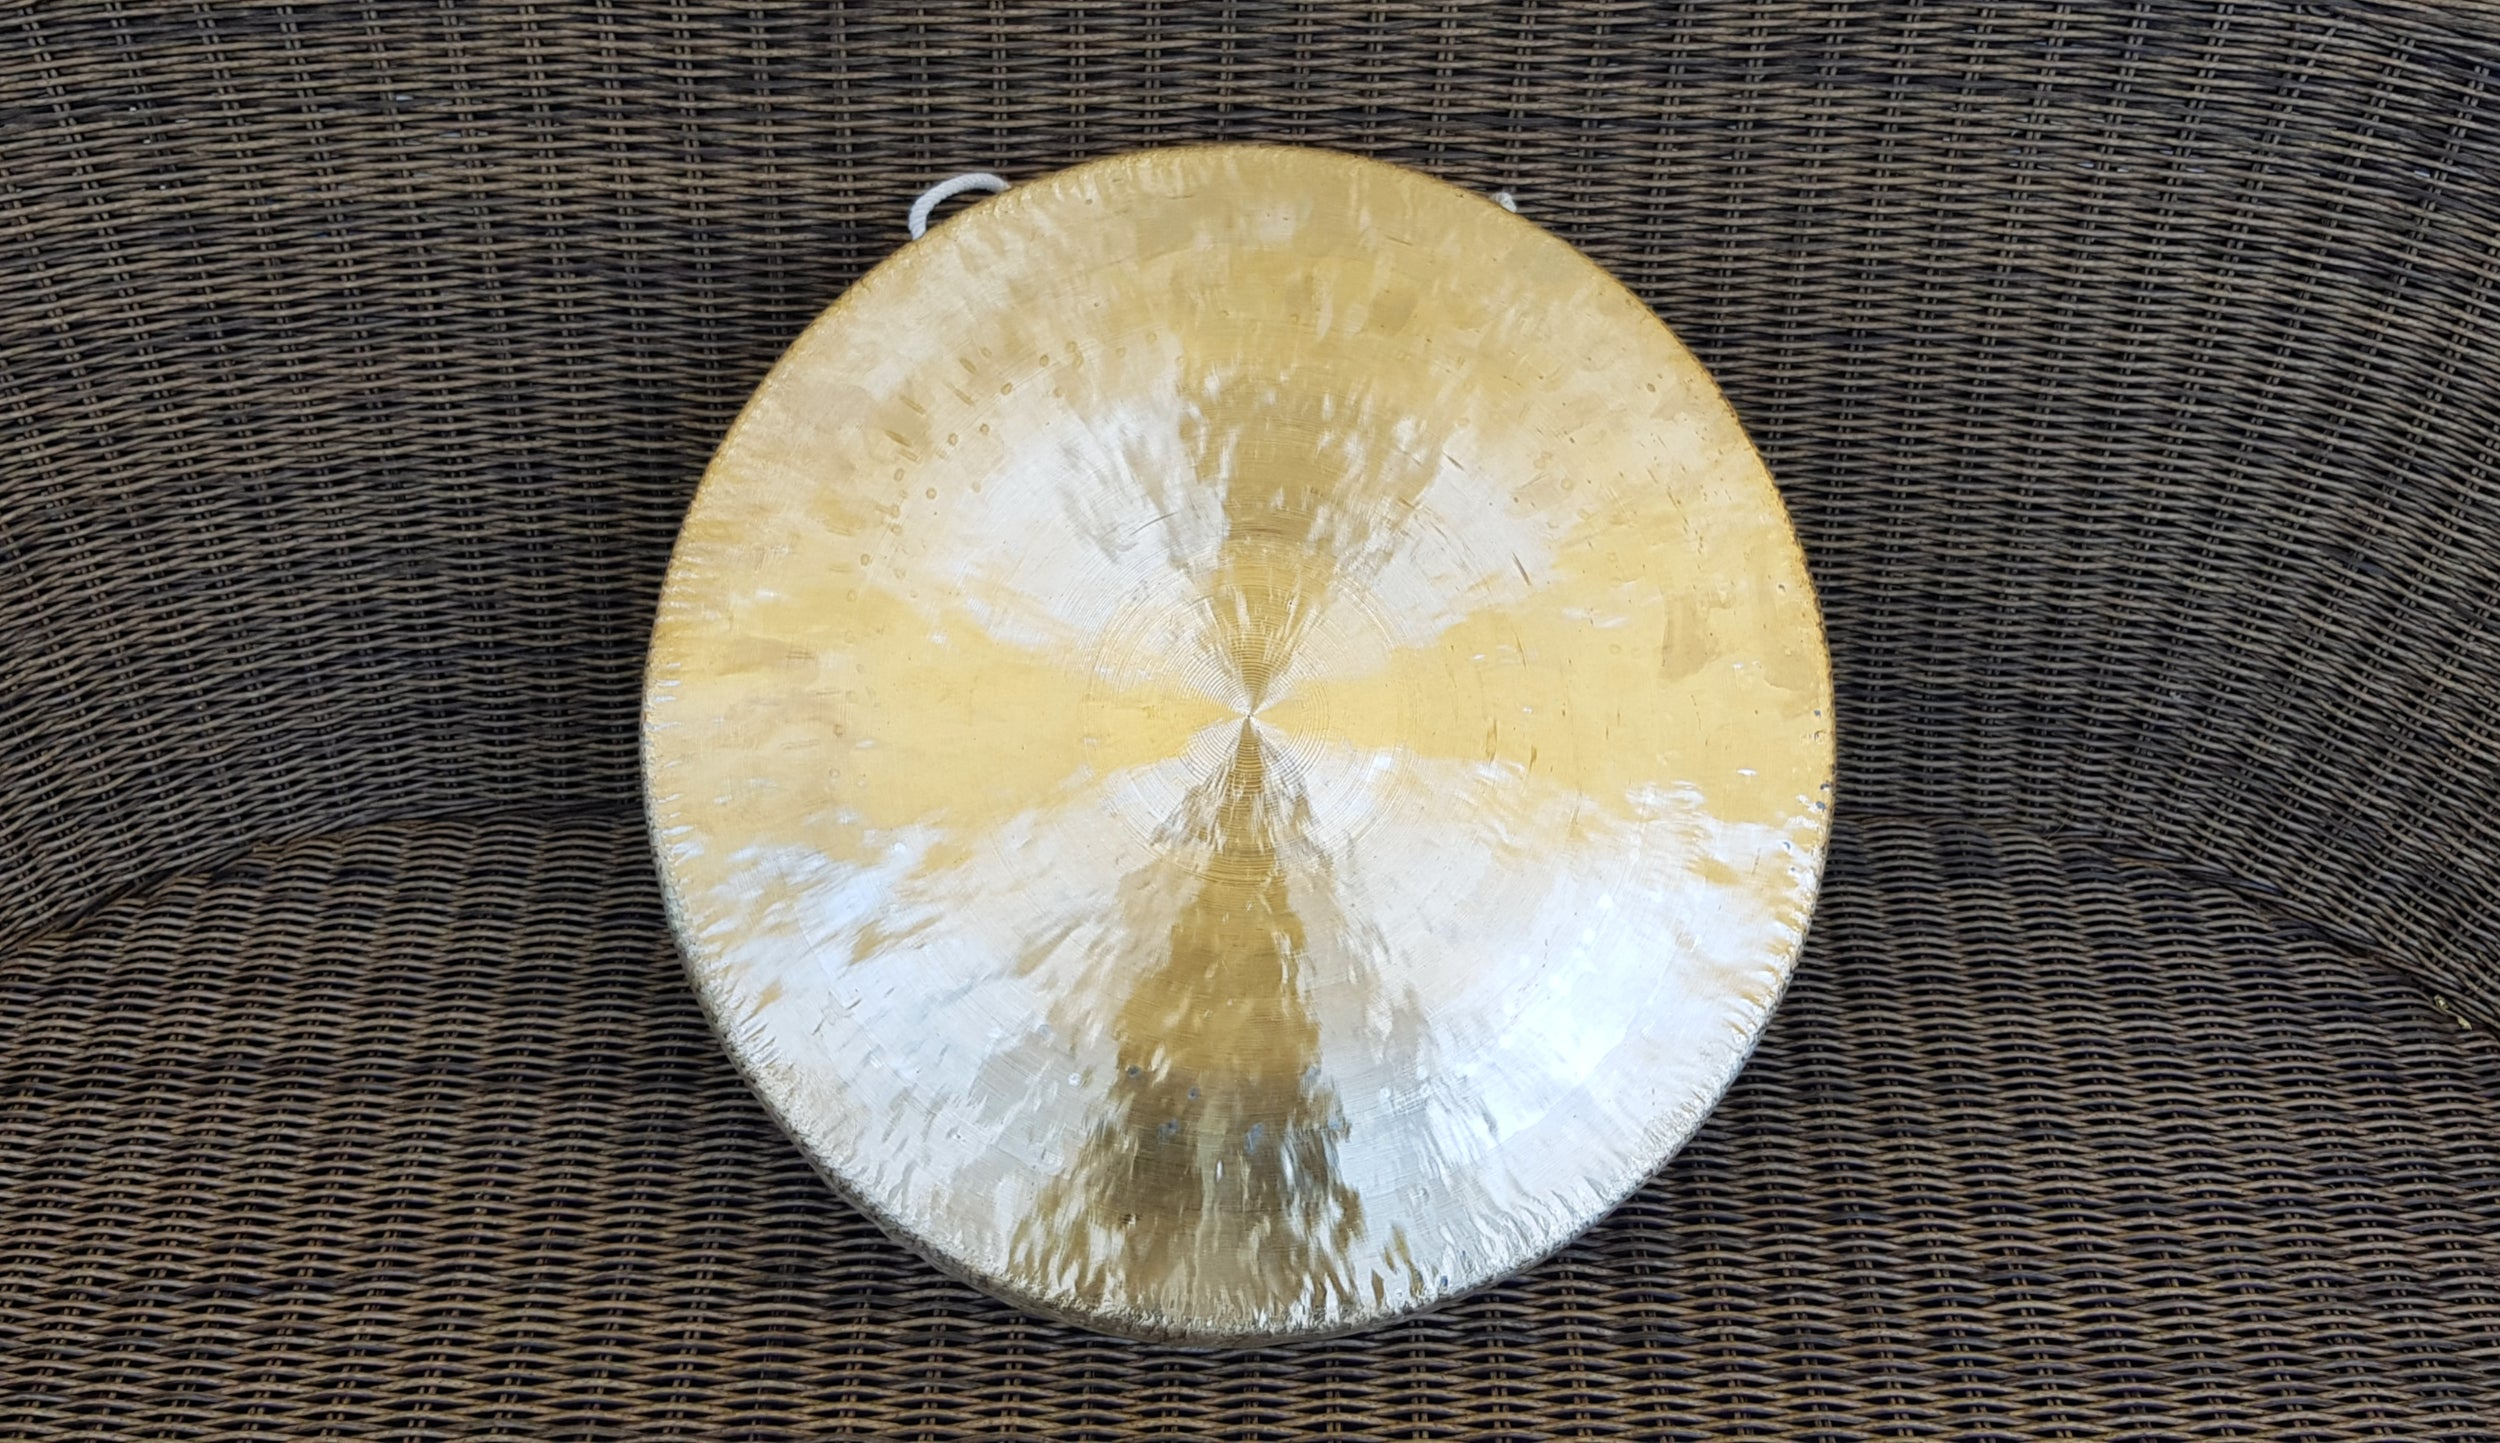 Gongs - Pure Gongs - For Healing and Sound Bath - Singbowls